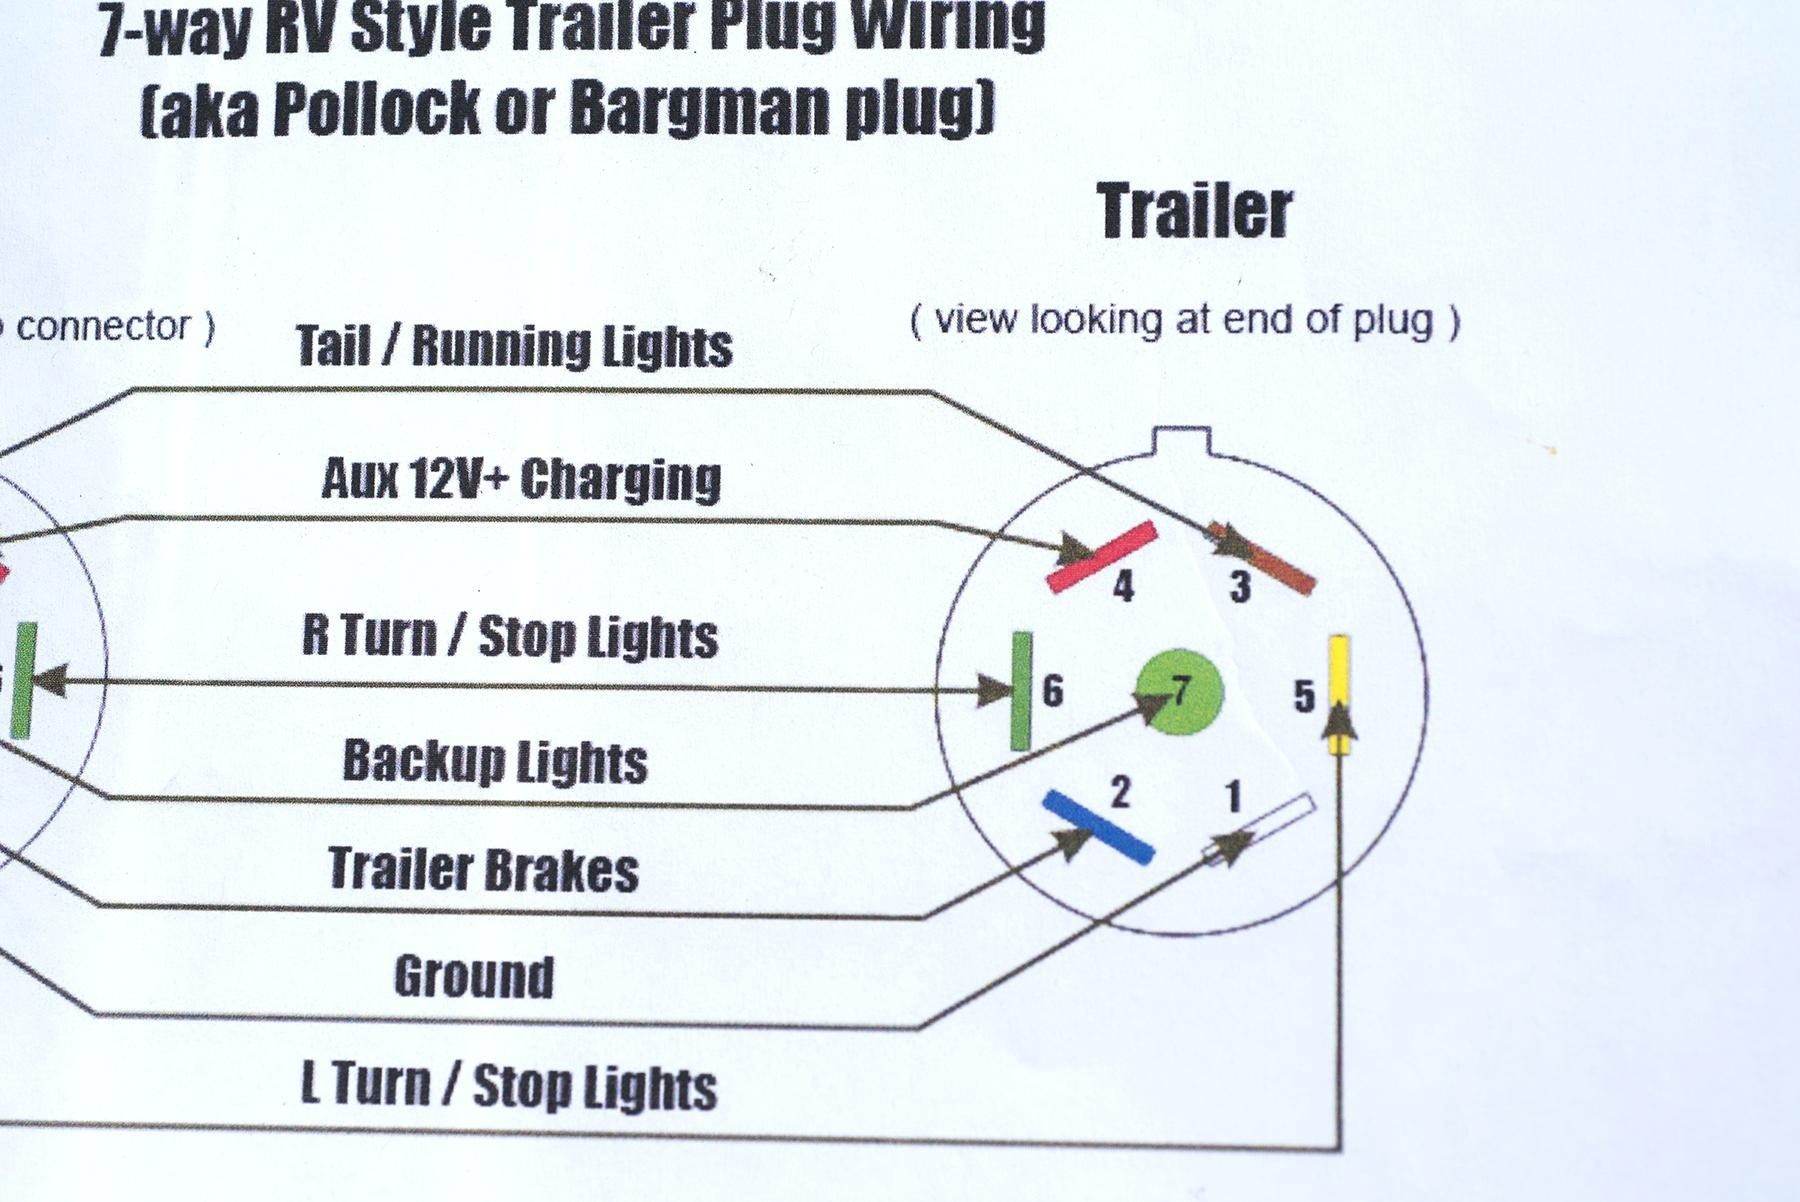 Farm Trailer Wiring Diagram - Wiring Diagram Name - Car Trailer Wiring Diagram With Brakes